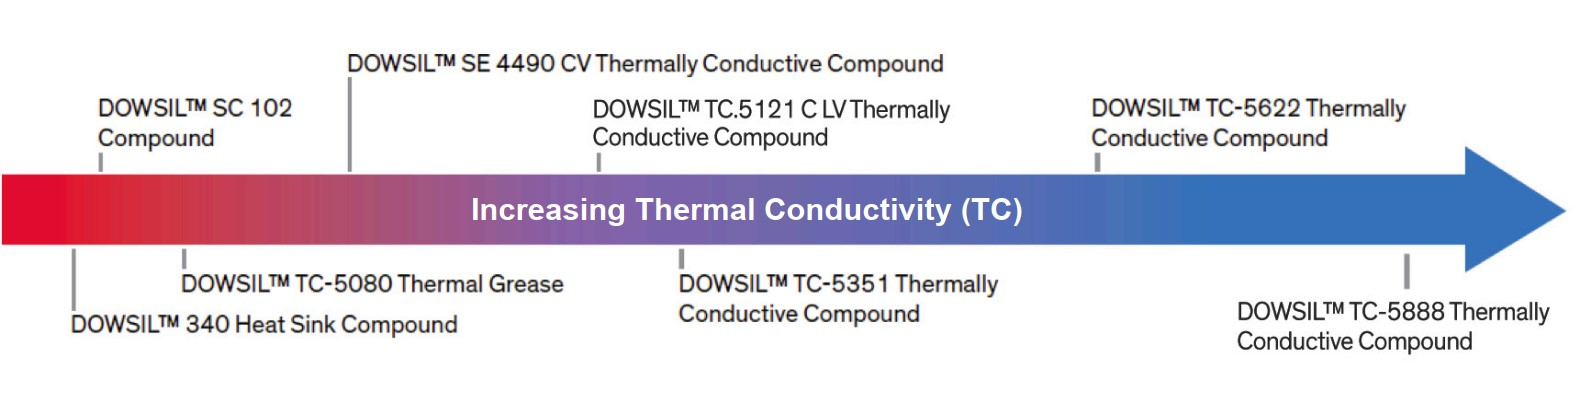 Applications_Thermally Conductive Compounds